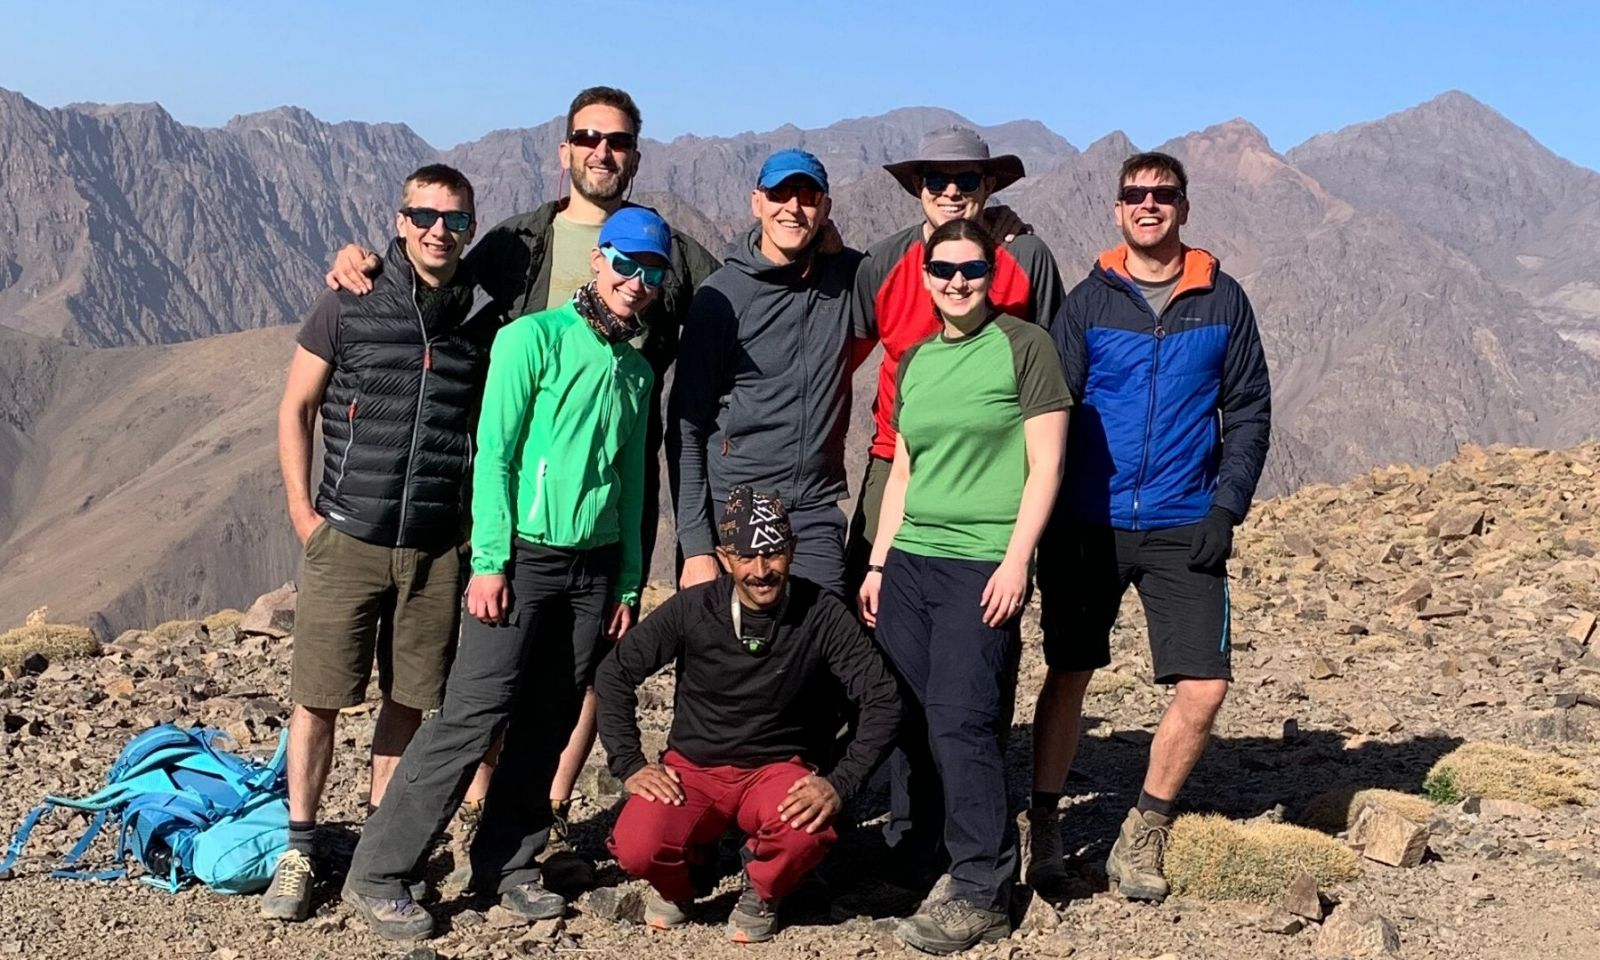 Group standing together in Morocco with mountains.